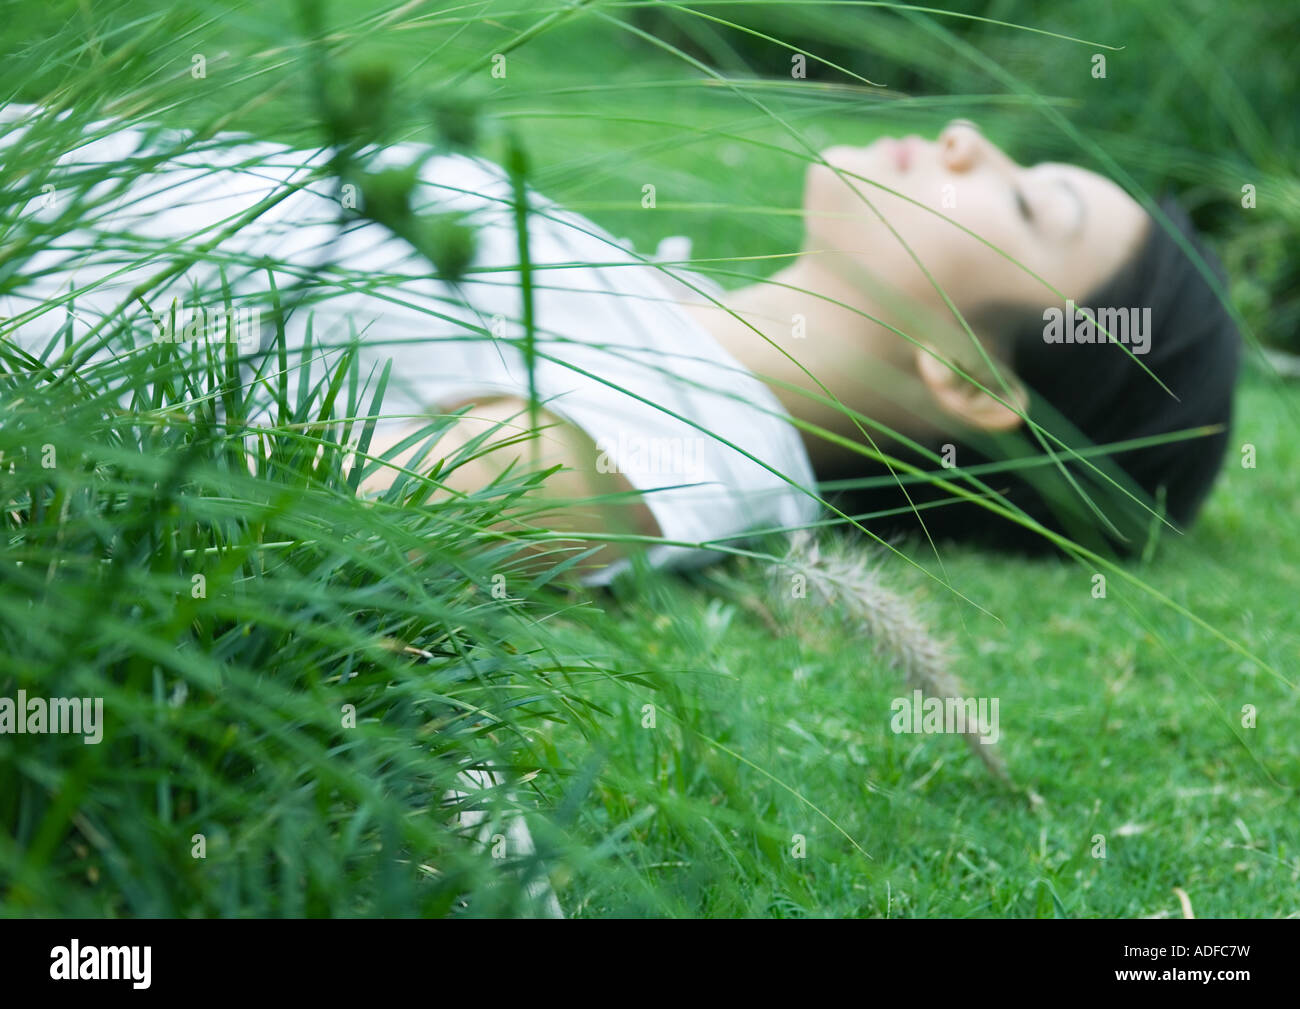 Woman lying on grass, eyes closed, focus on plants in foreground Stock Photo